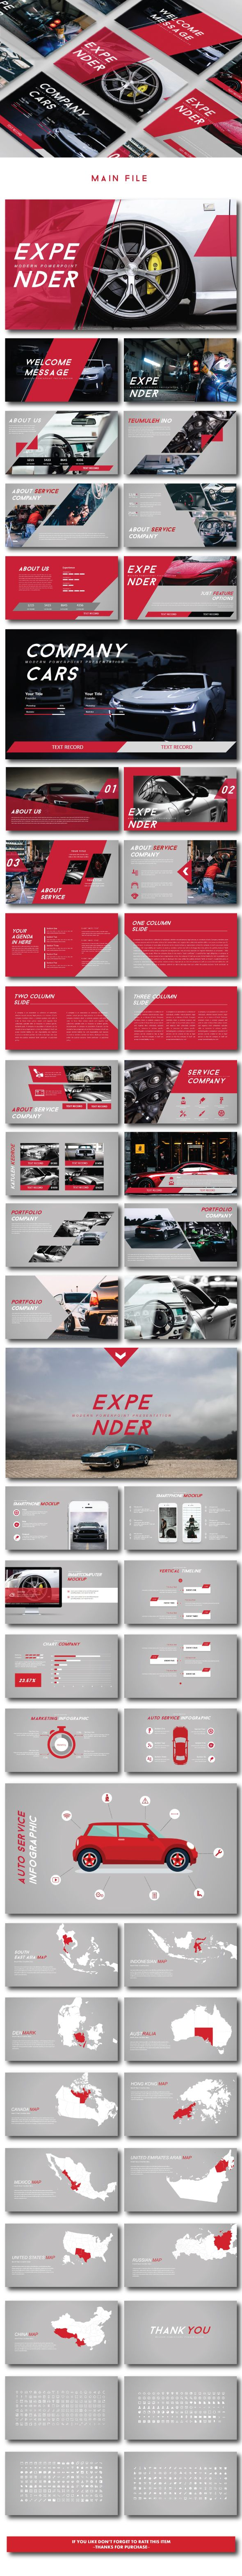 #Expender Modern PPTX - Creative #PowerPoint Templates